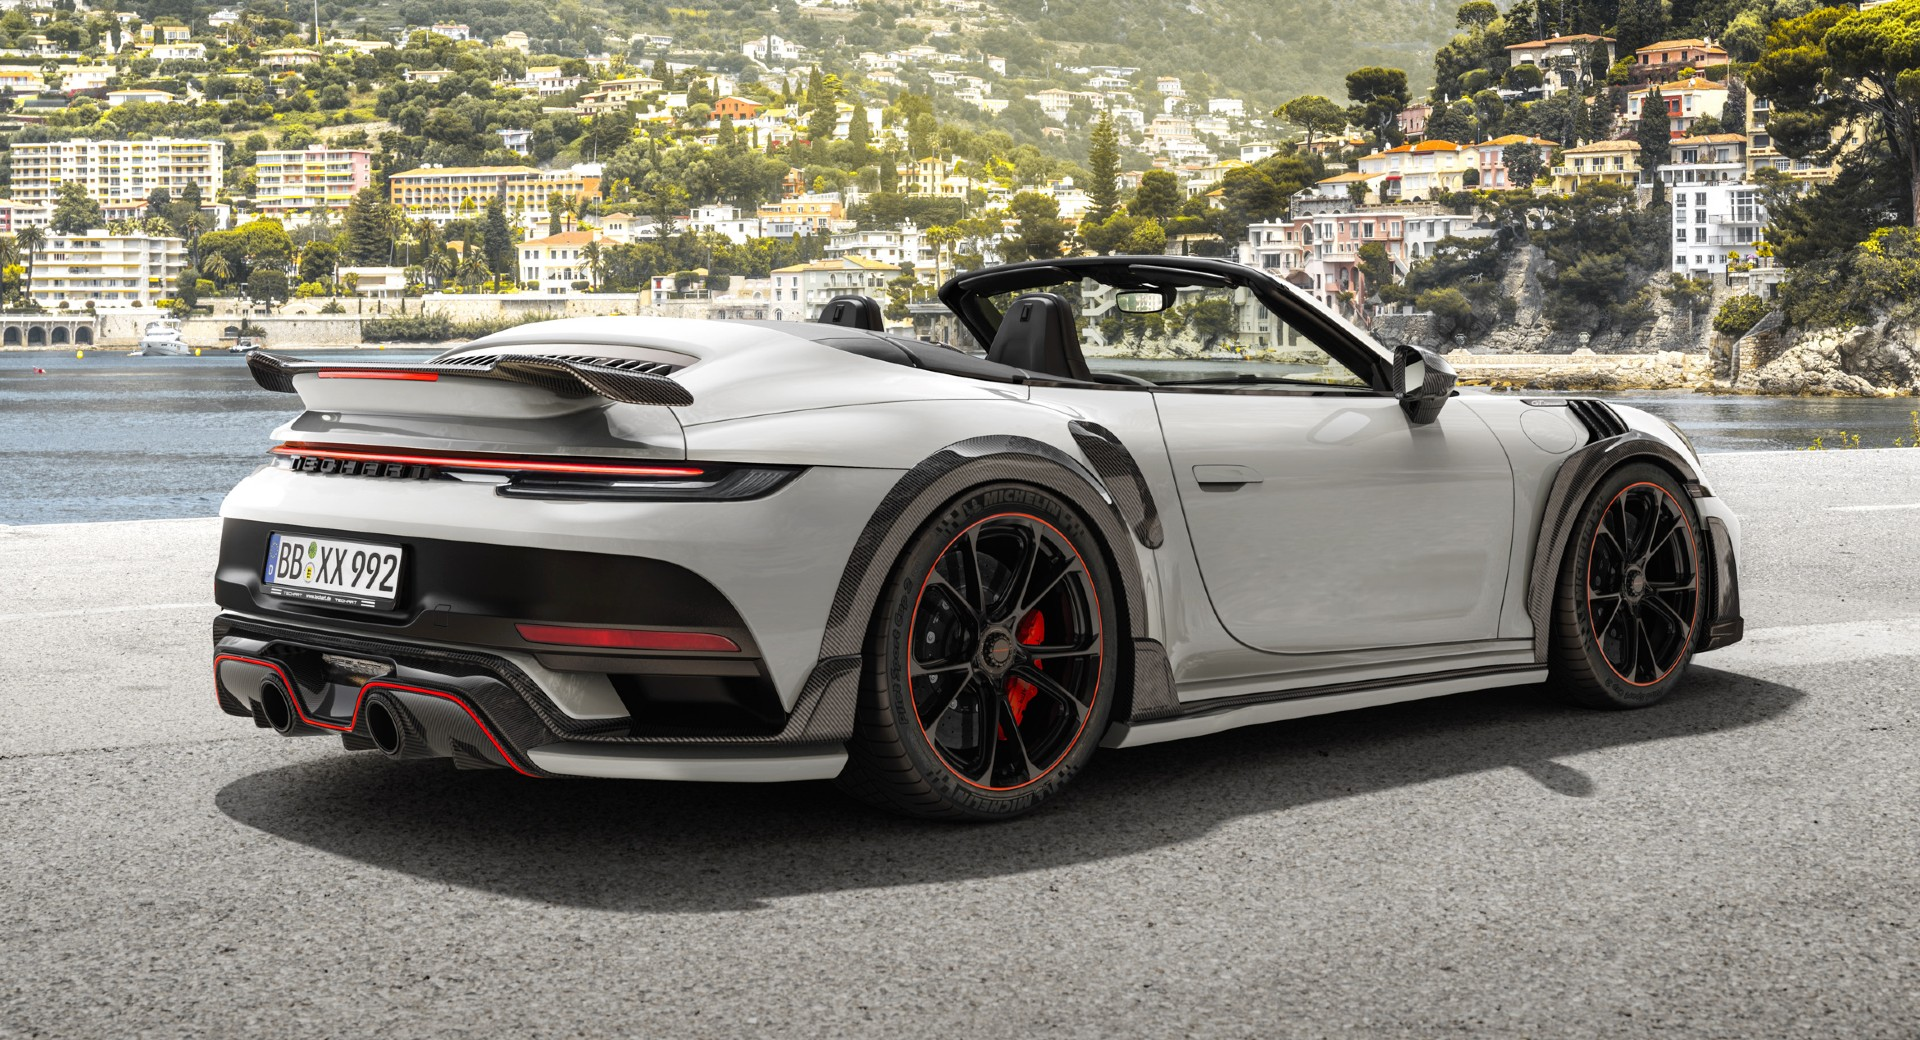 German tuner Techart did a thorough job on the Porsche 911 (992) Turbo and Turbo S Coupe improving their power and looks, and now a similar tuning package comes for the convertible 911.